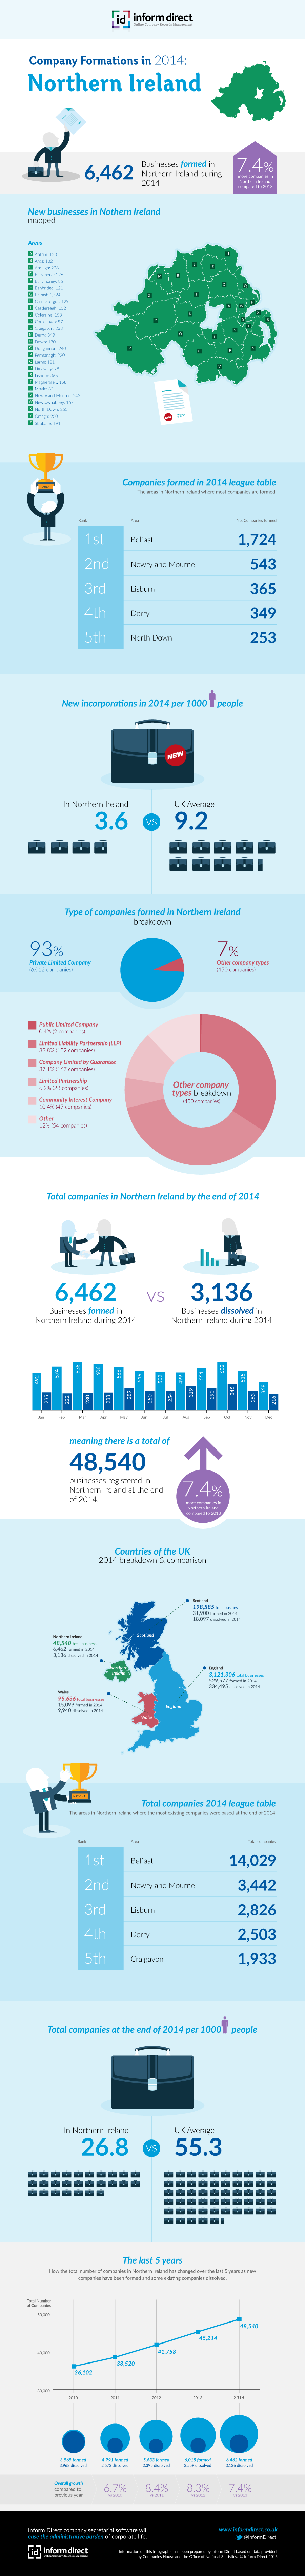 Inform Direct - Company Formations in Northern Ireland 2014 Infographic